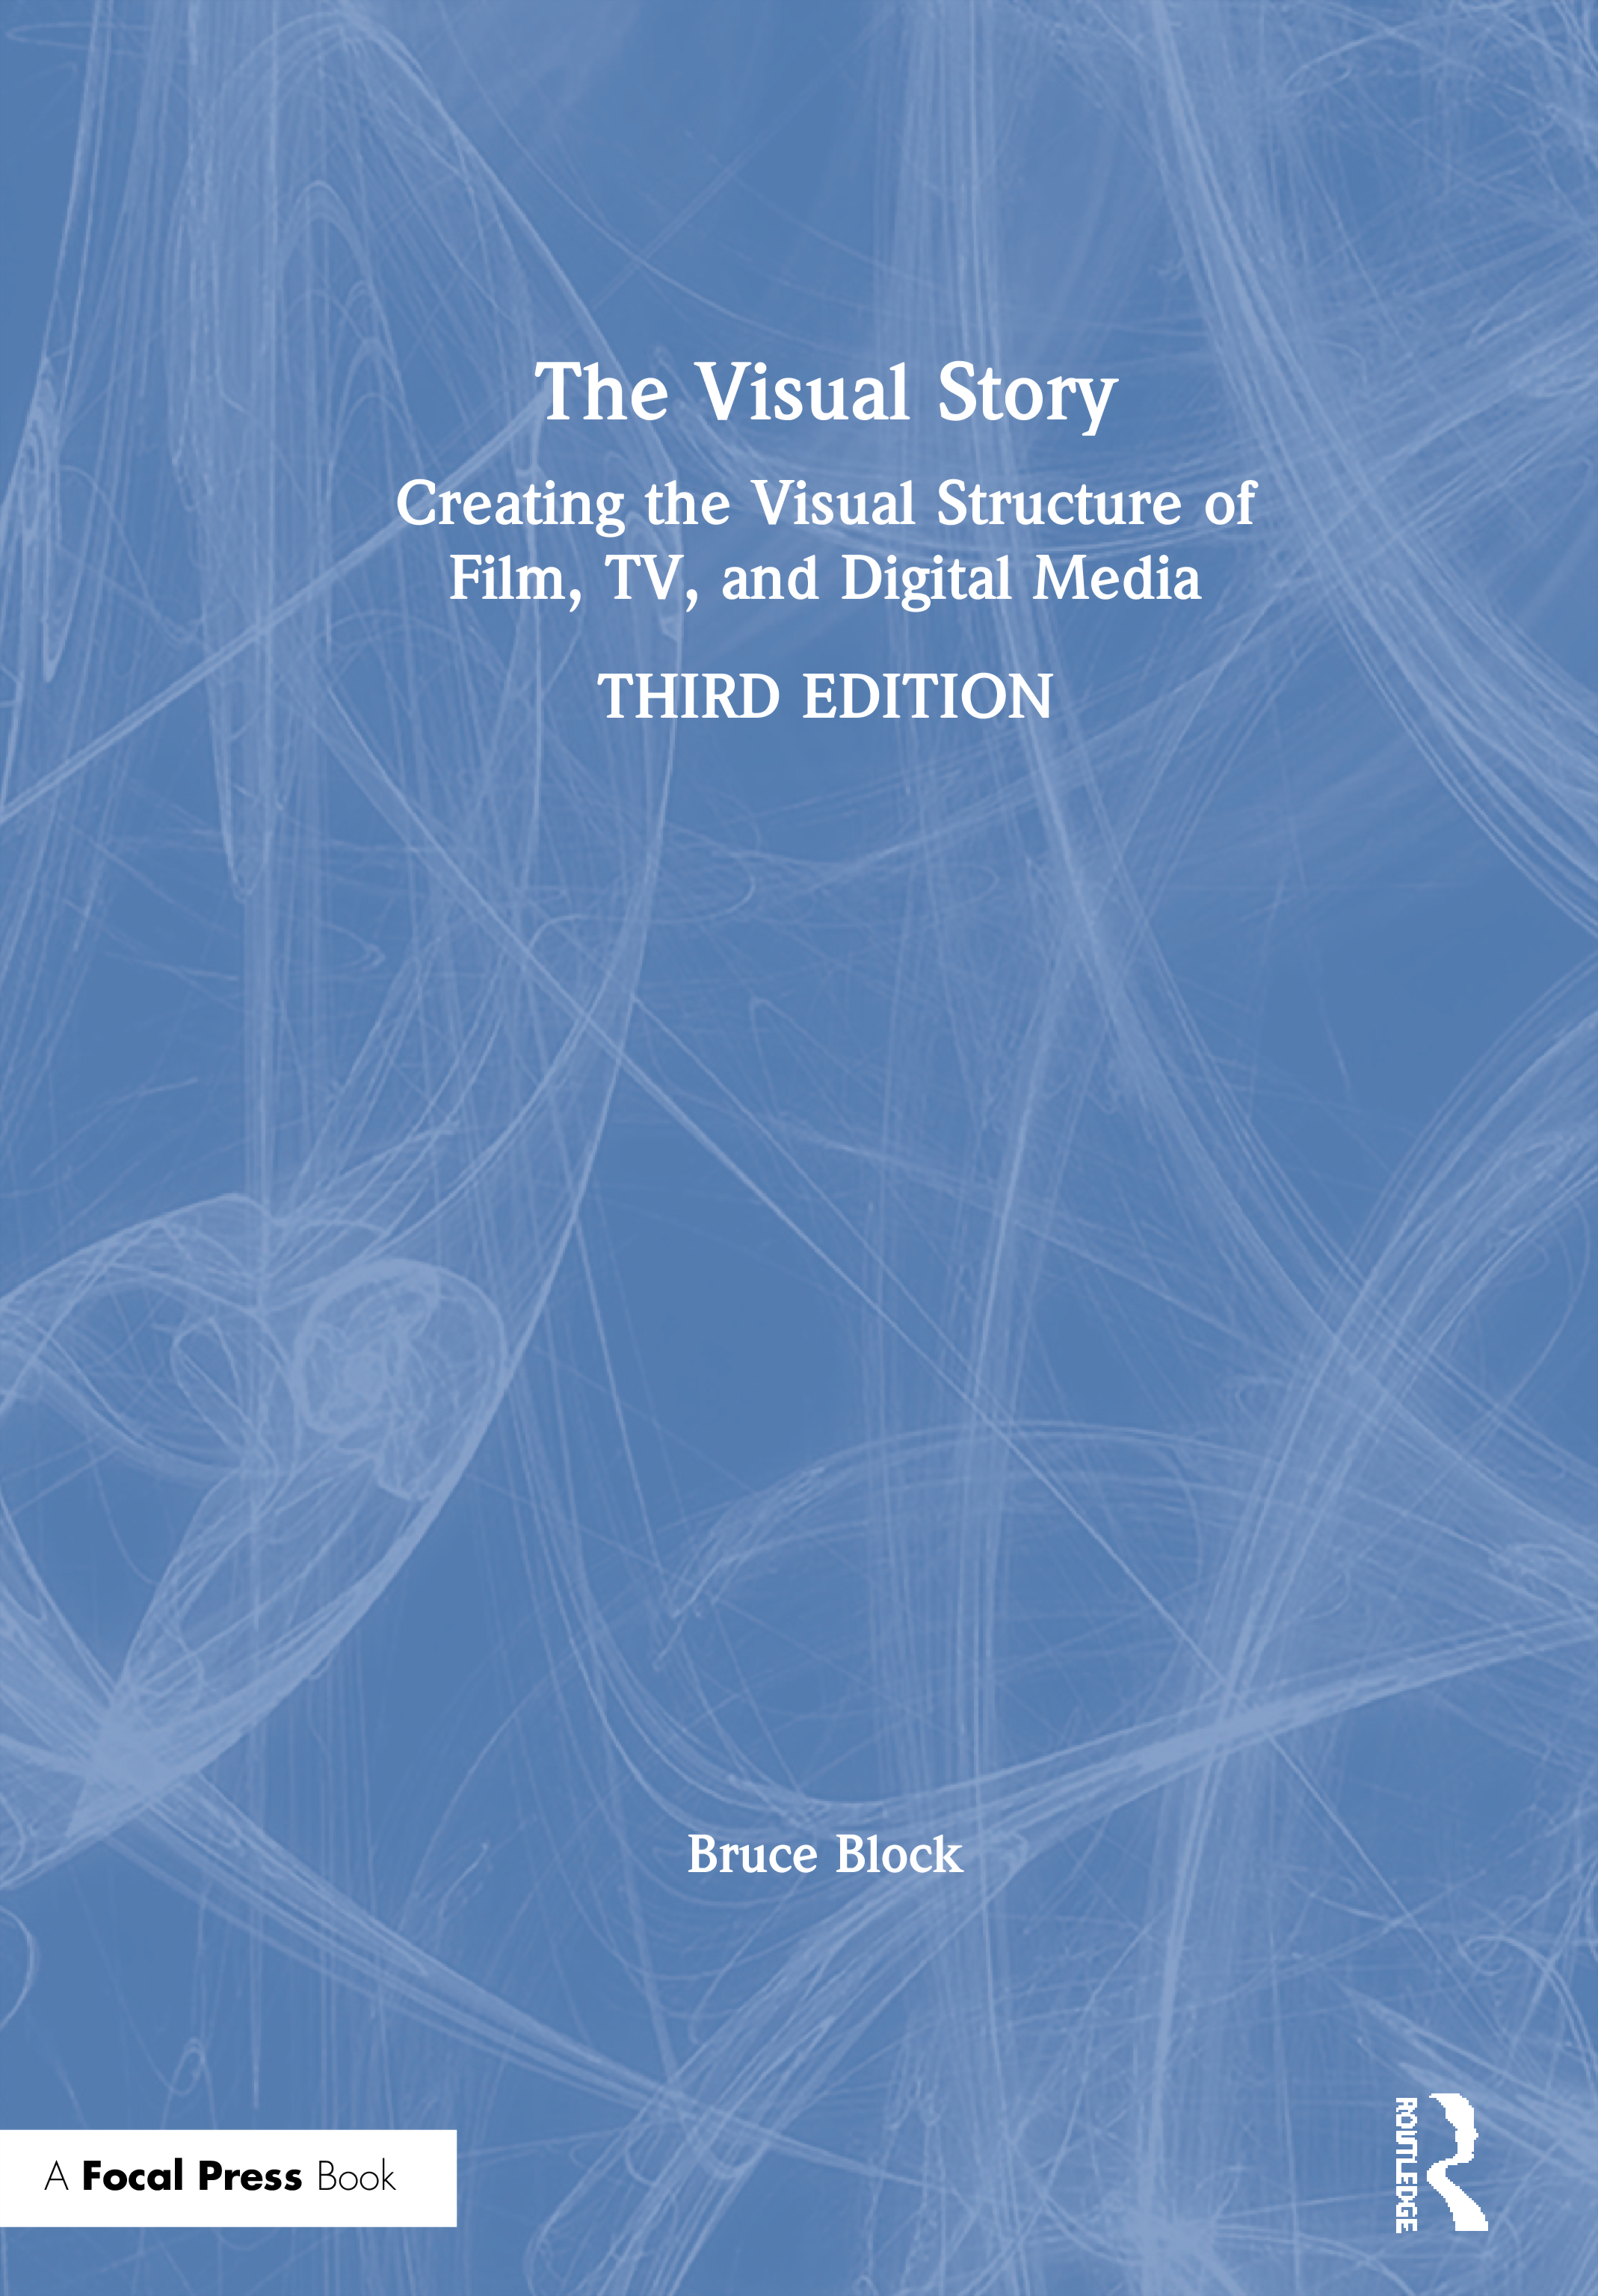 The Visual Story: Creating the Visual Structure of Film, TV and Digital Media book cover